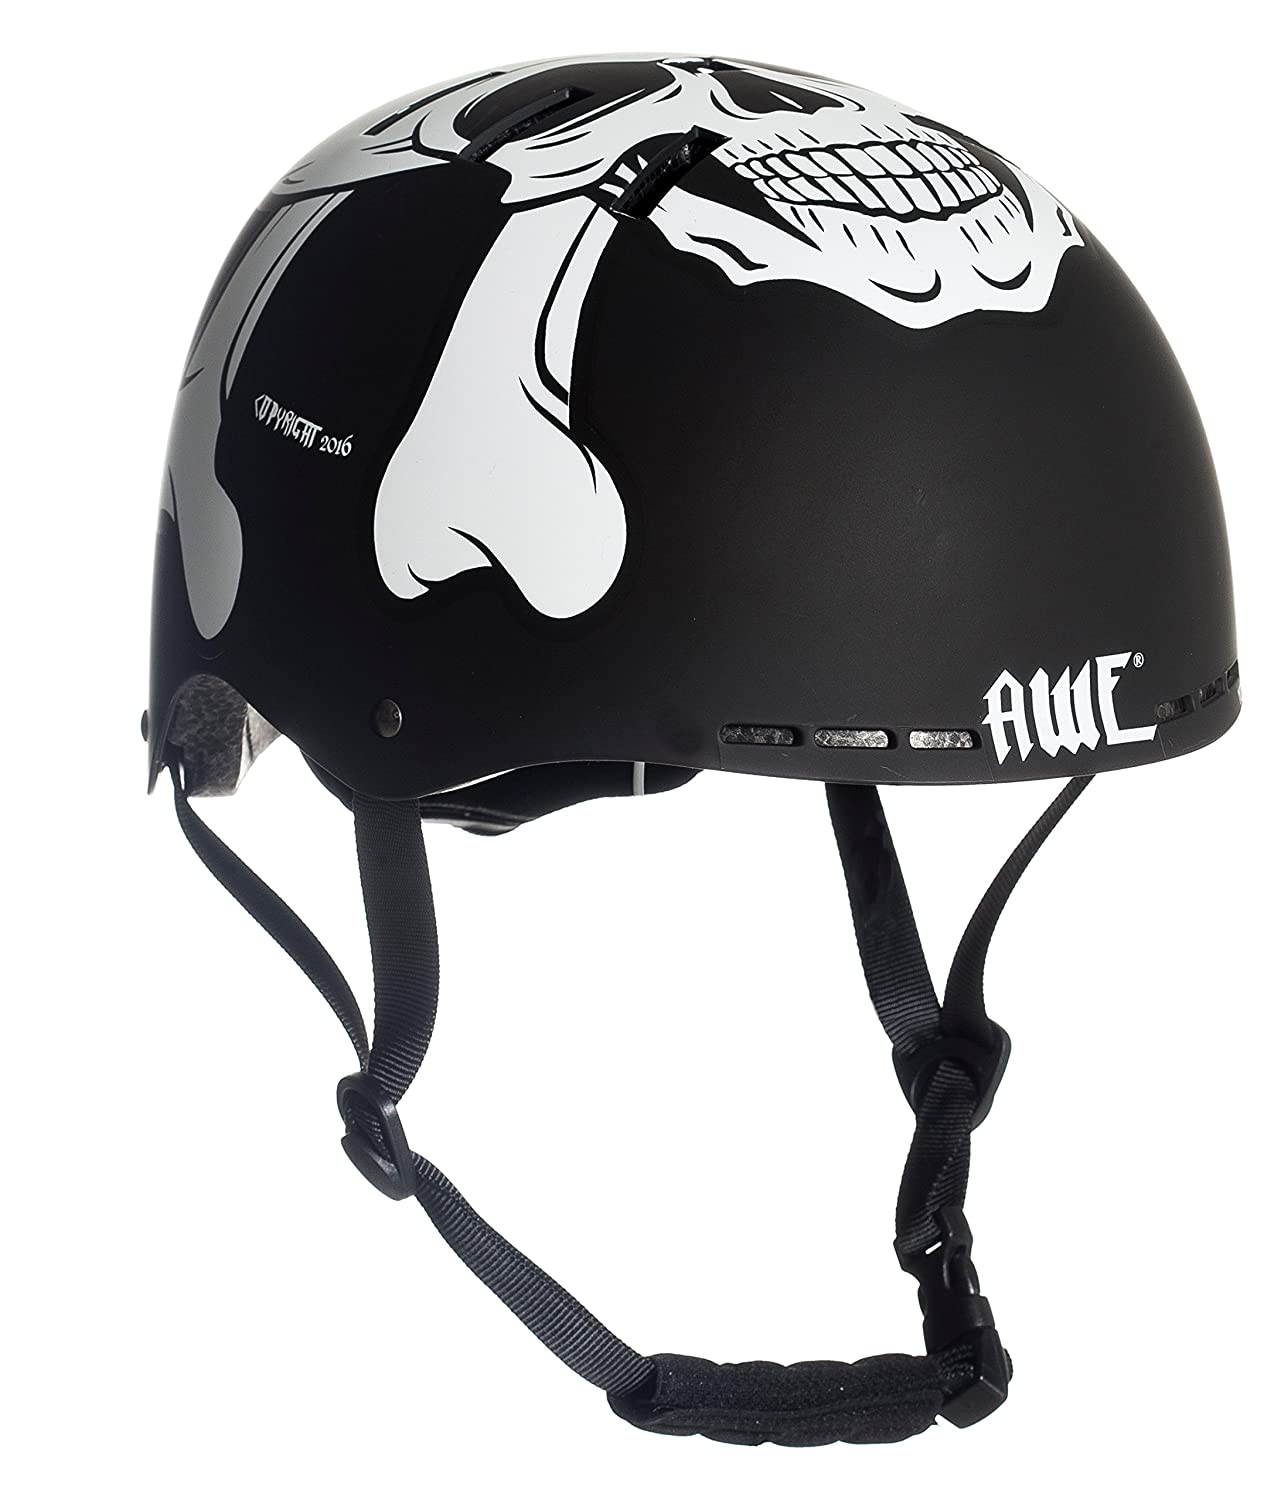 AWE Meet Your Maker BMX Casque Noir 55-58cm Remplacement Gratuit de 5 Ans DE Crash * AWE®